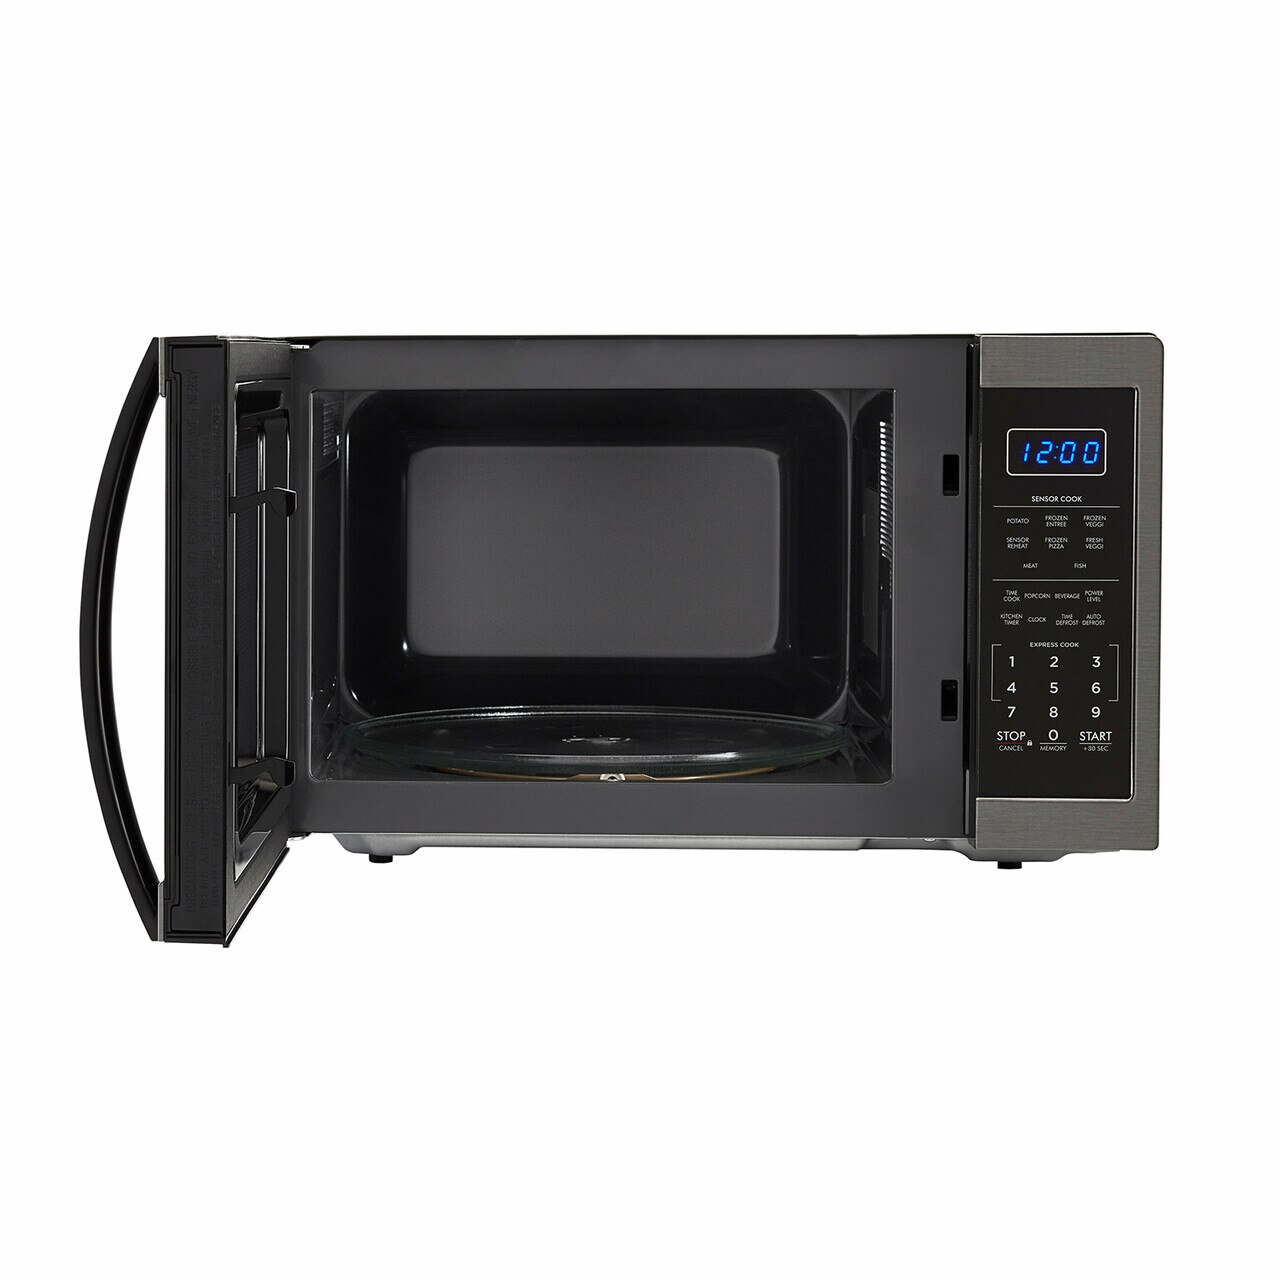 1.4 cu. ft. Sharp Black Stainless Steel Microwave (SMC1452CH) – front view with door open